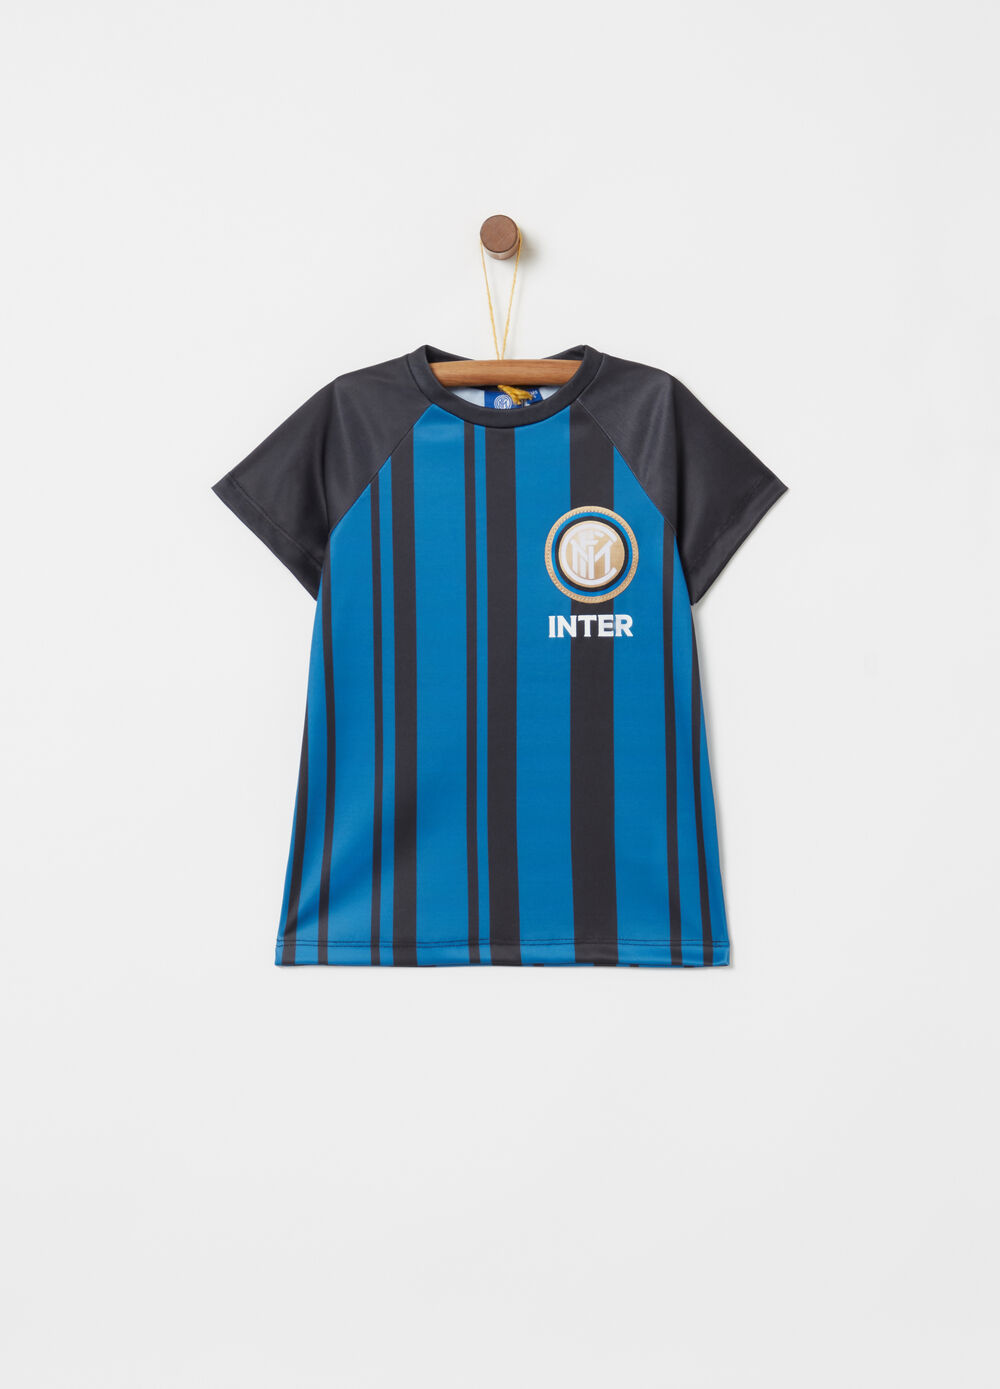 T-shirt with Inter print, stripes and raglan sleeves